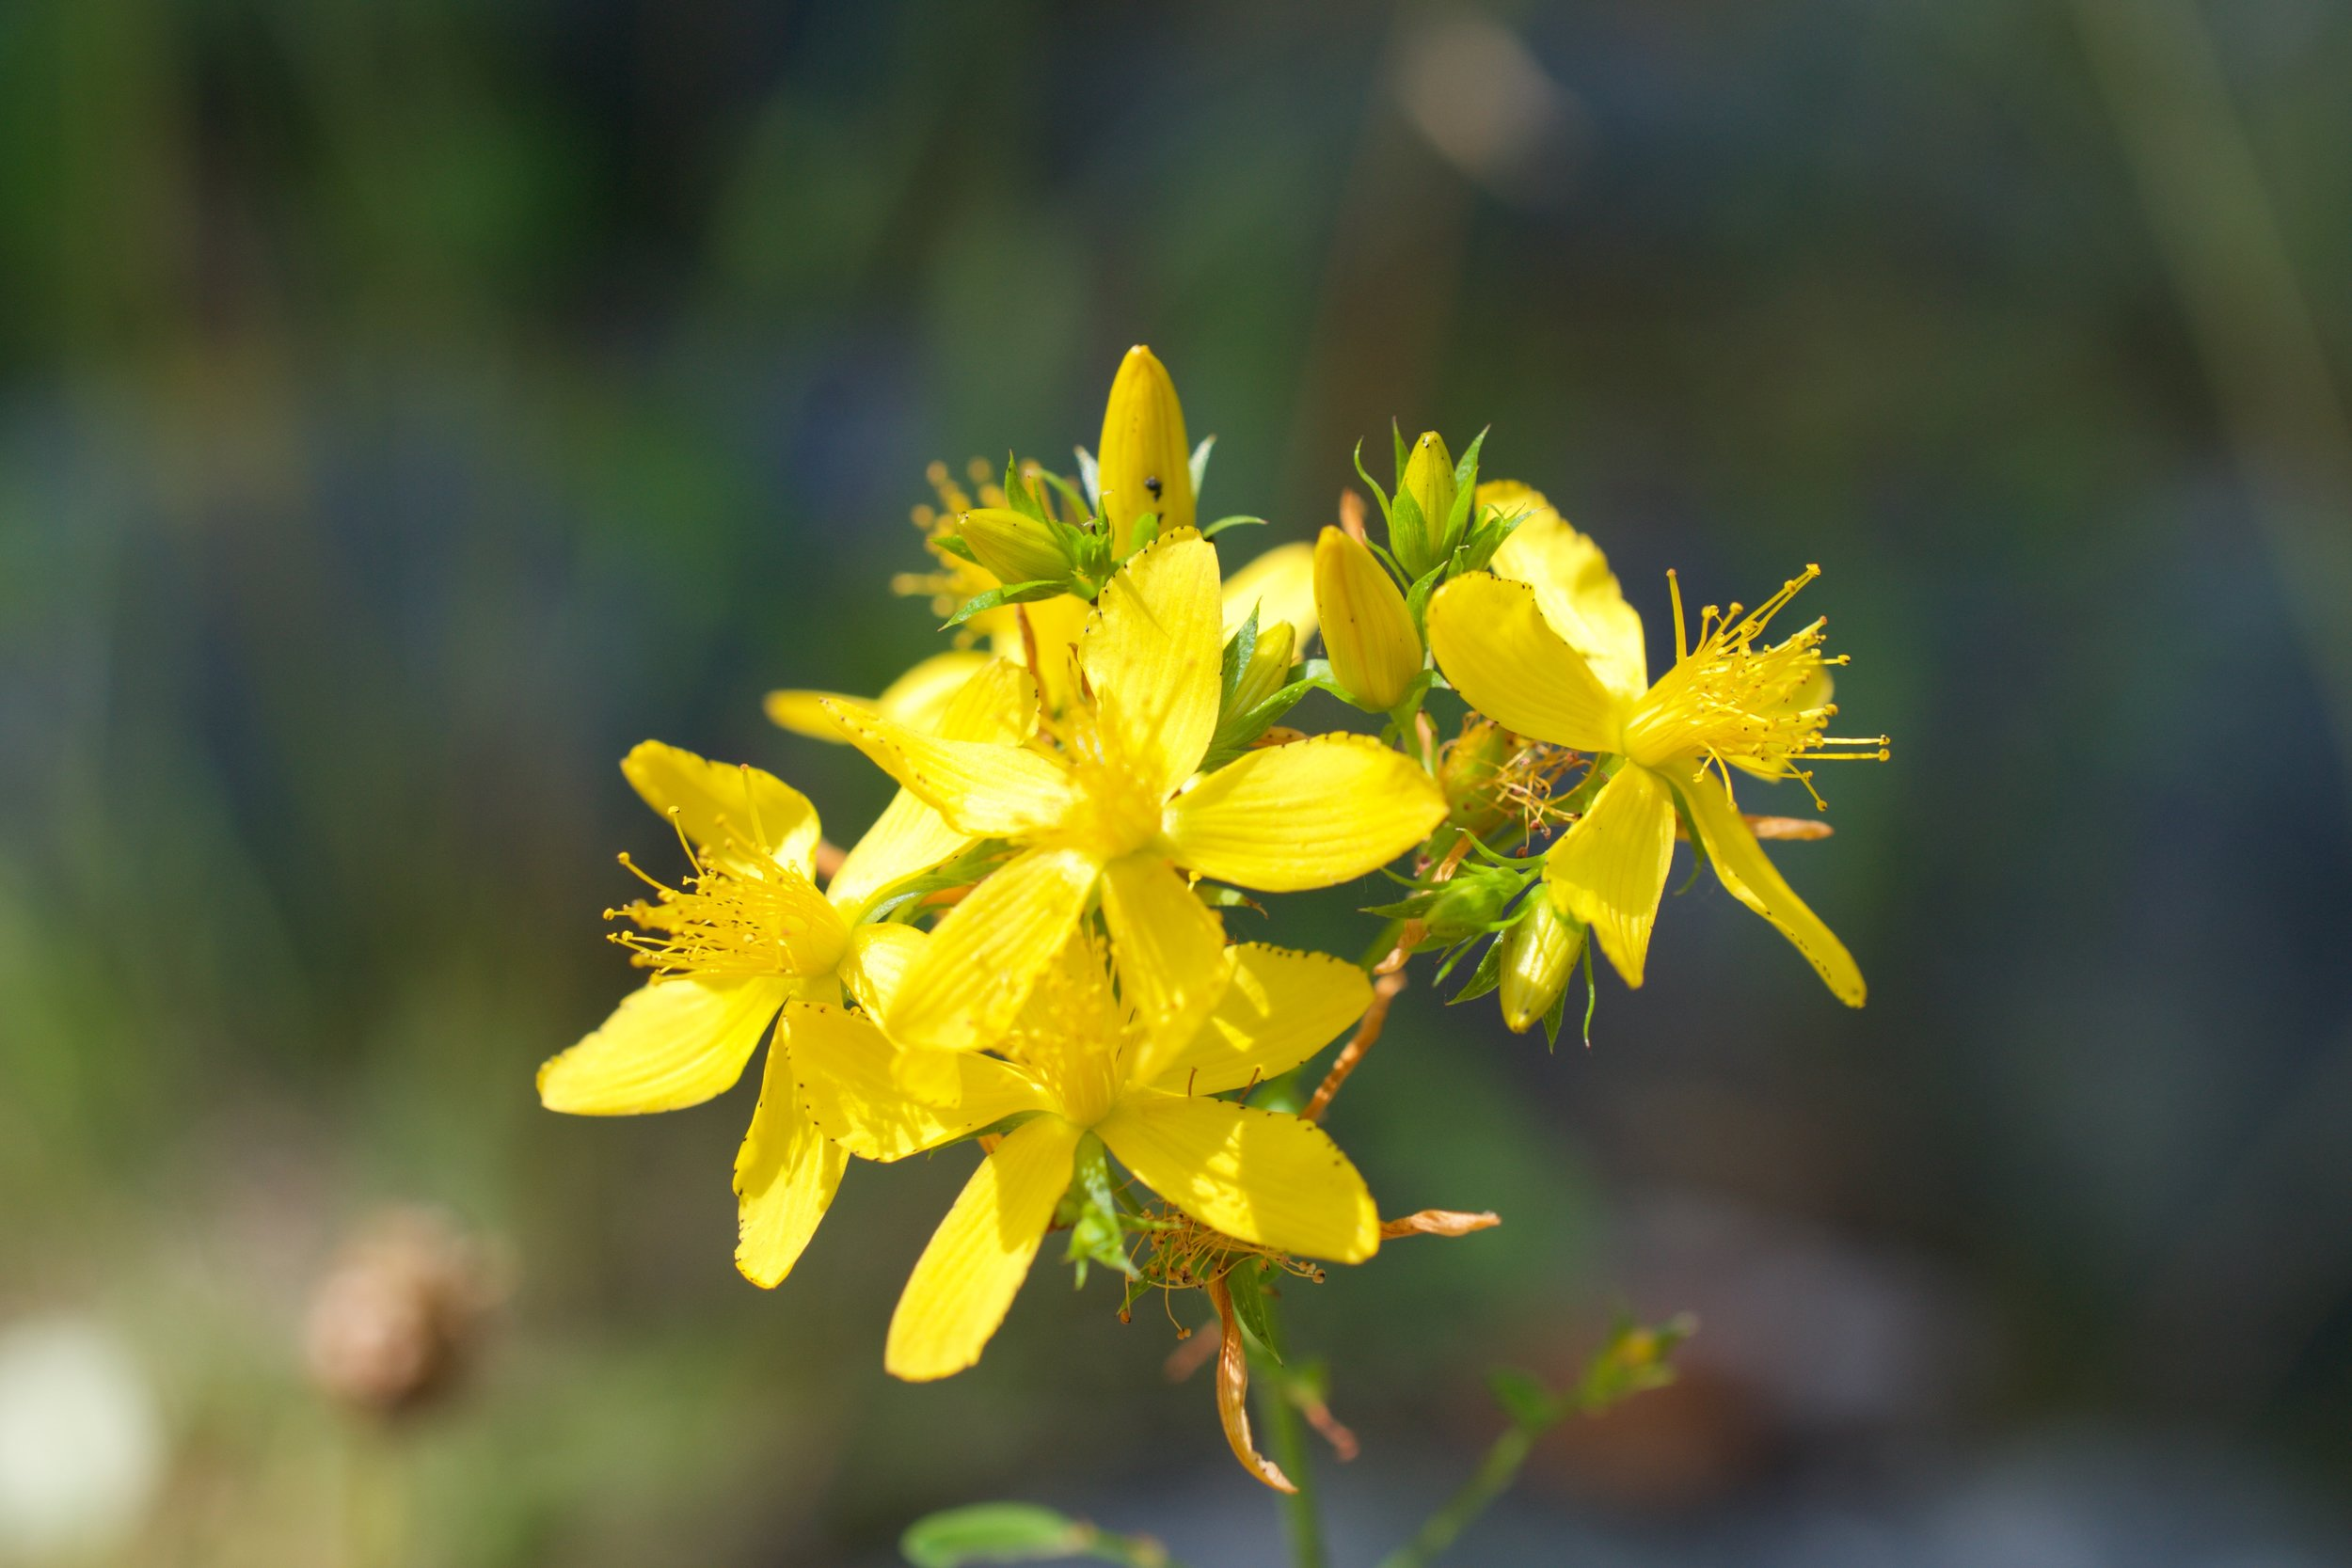 St. John's Wort has antiviral activity.